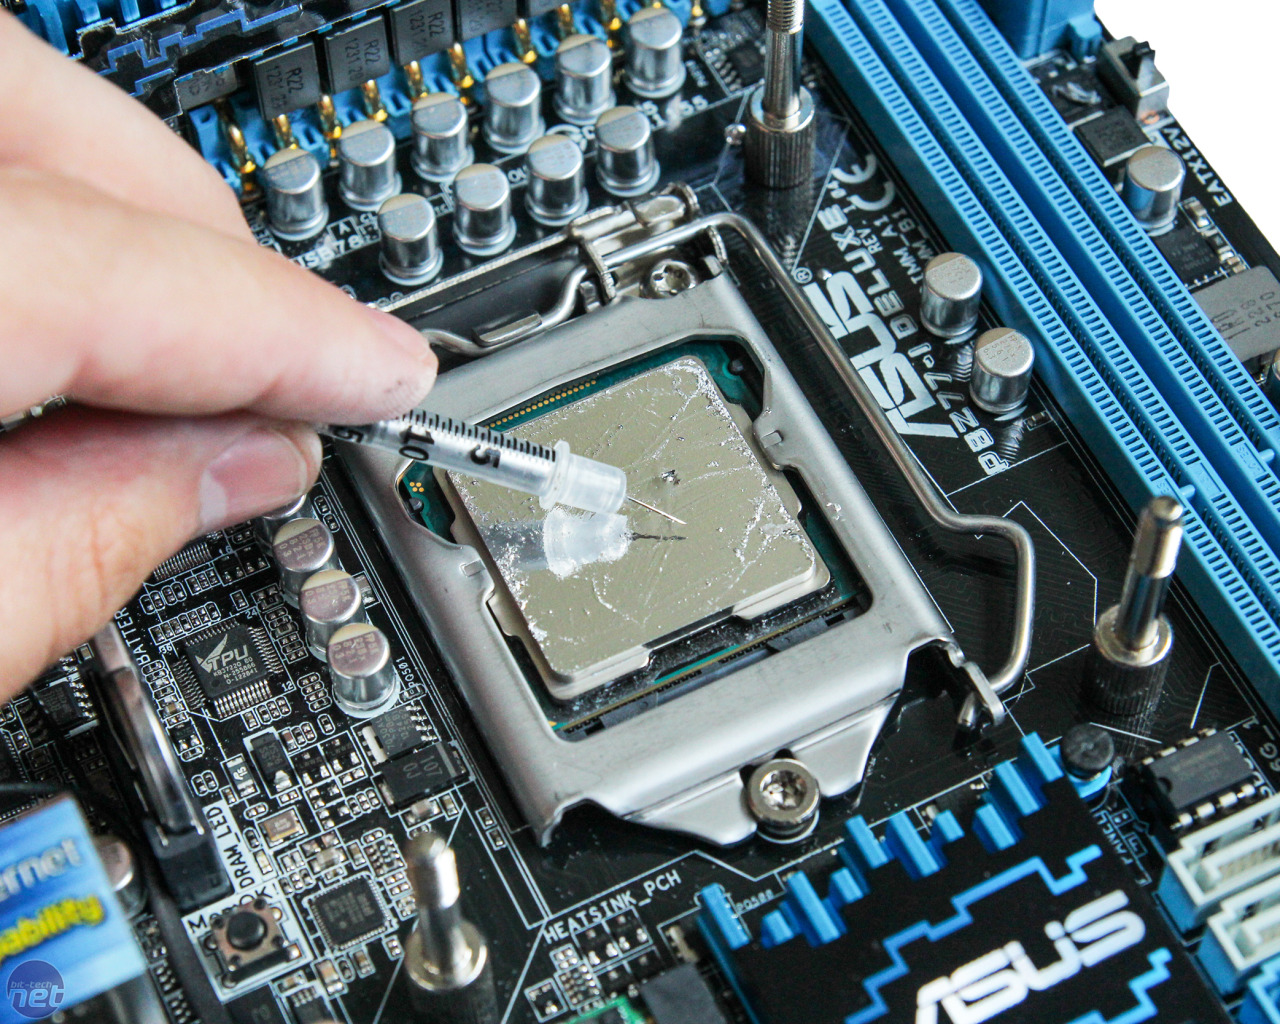 make sure to remove old thermal paste and clean cpu surface